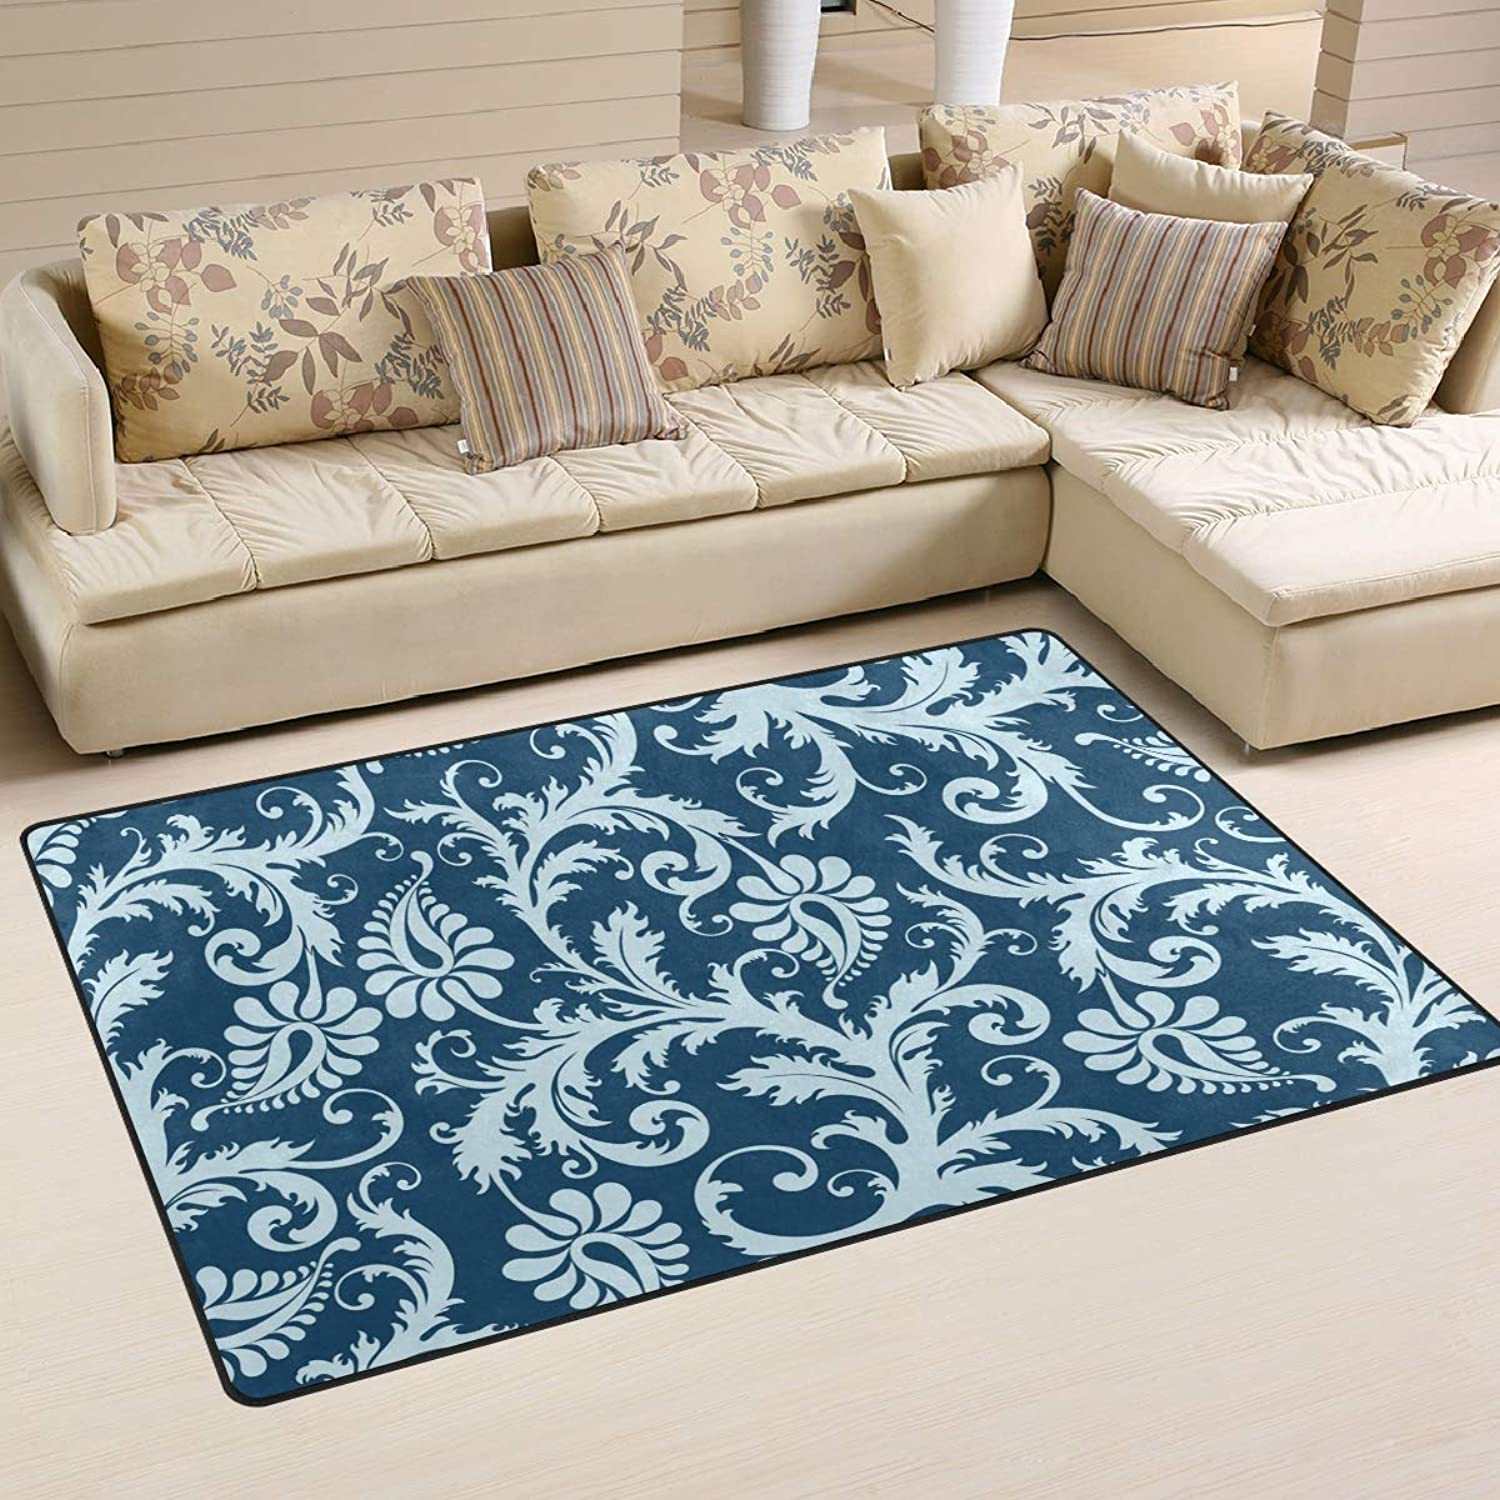 FANTAZIO Area Rug Accessories bluee European Flowers Entry doormats for Corners and Edge Anti-Curling Ideal Rug Stopper 31x20in 60x39in